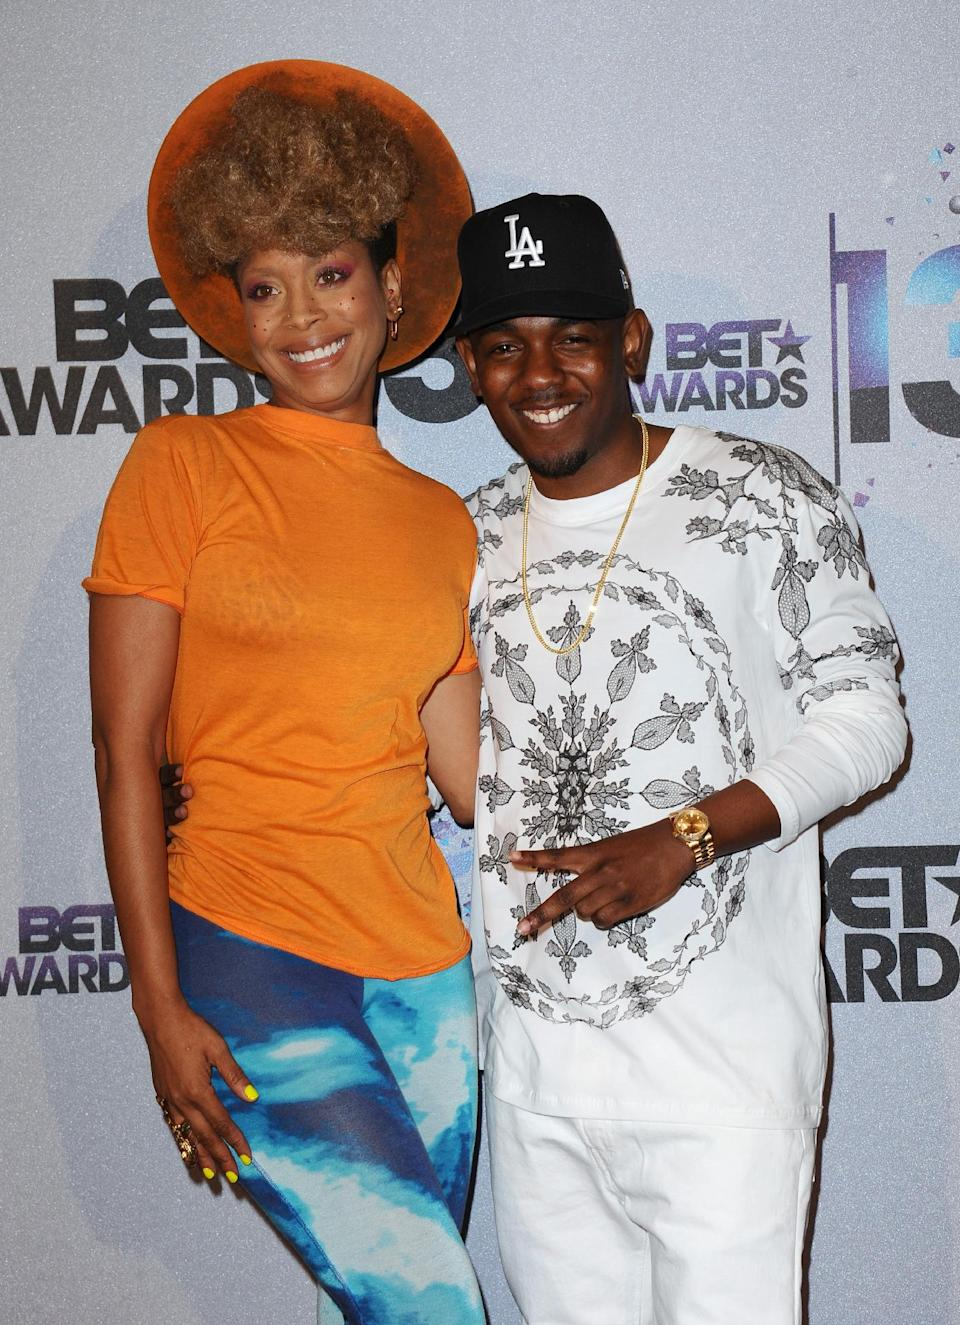 Erykah Badu, left, and Kendrick Lamar pose backstage at the BET Awards at the Nokia Theatre on Sunday, June 30, 2013, in Los Angeles. (Photo by Scott Kirkland/Invision/AP)